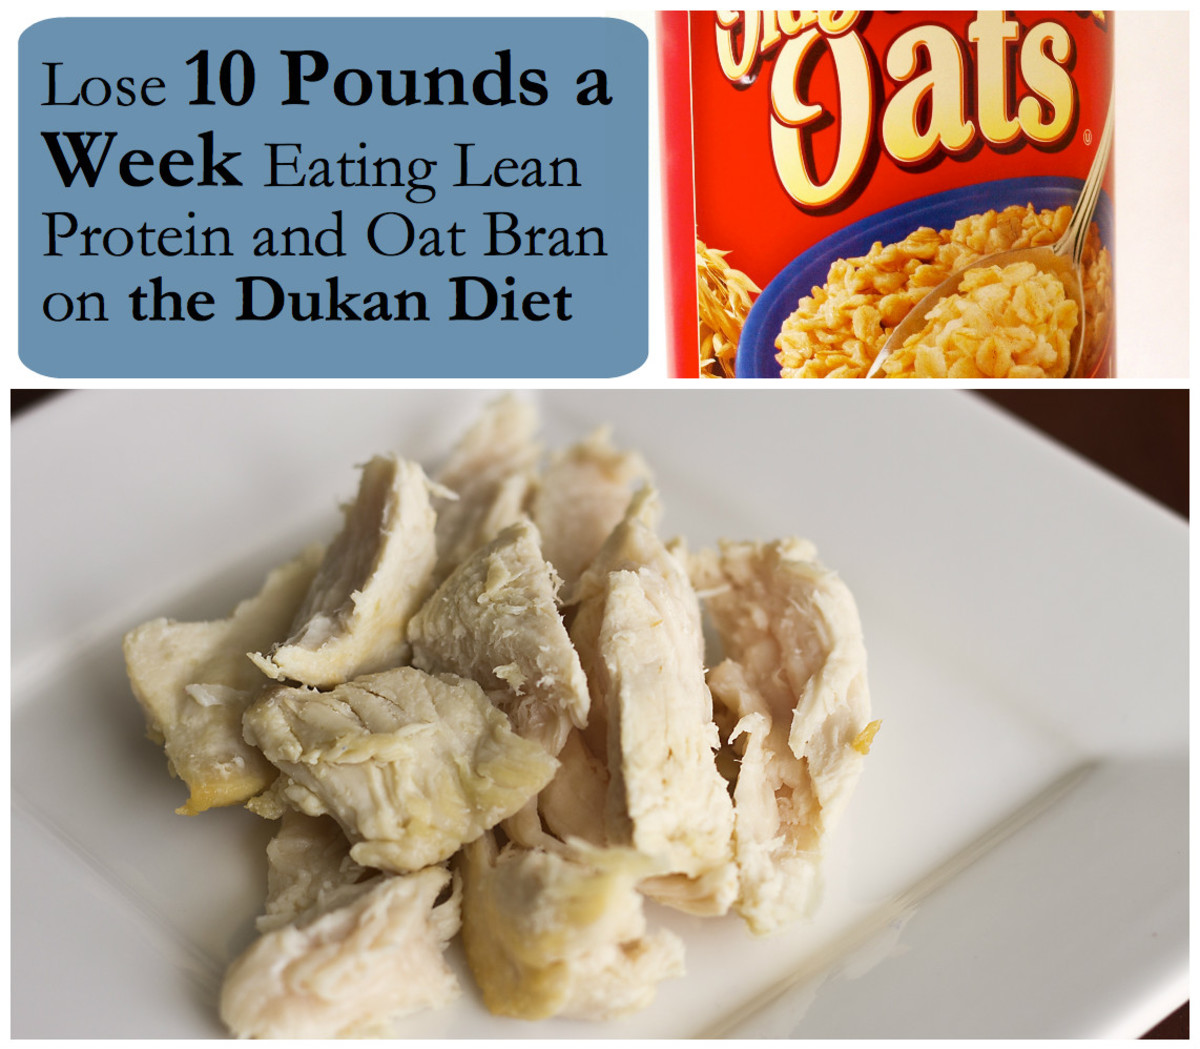 Oat bran and lean protein are at the heart of the Dukan diet.